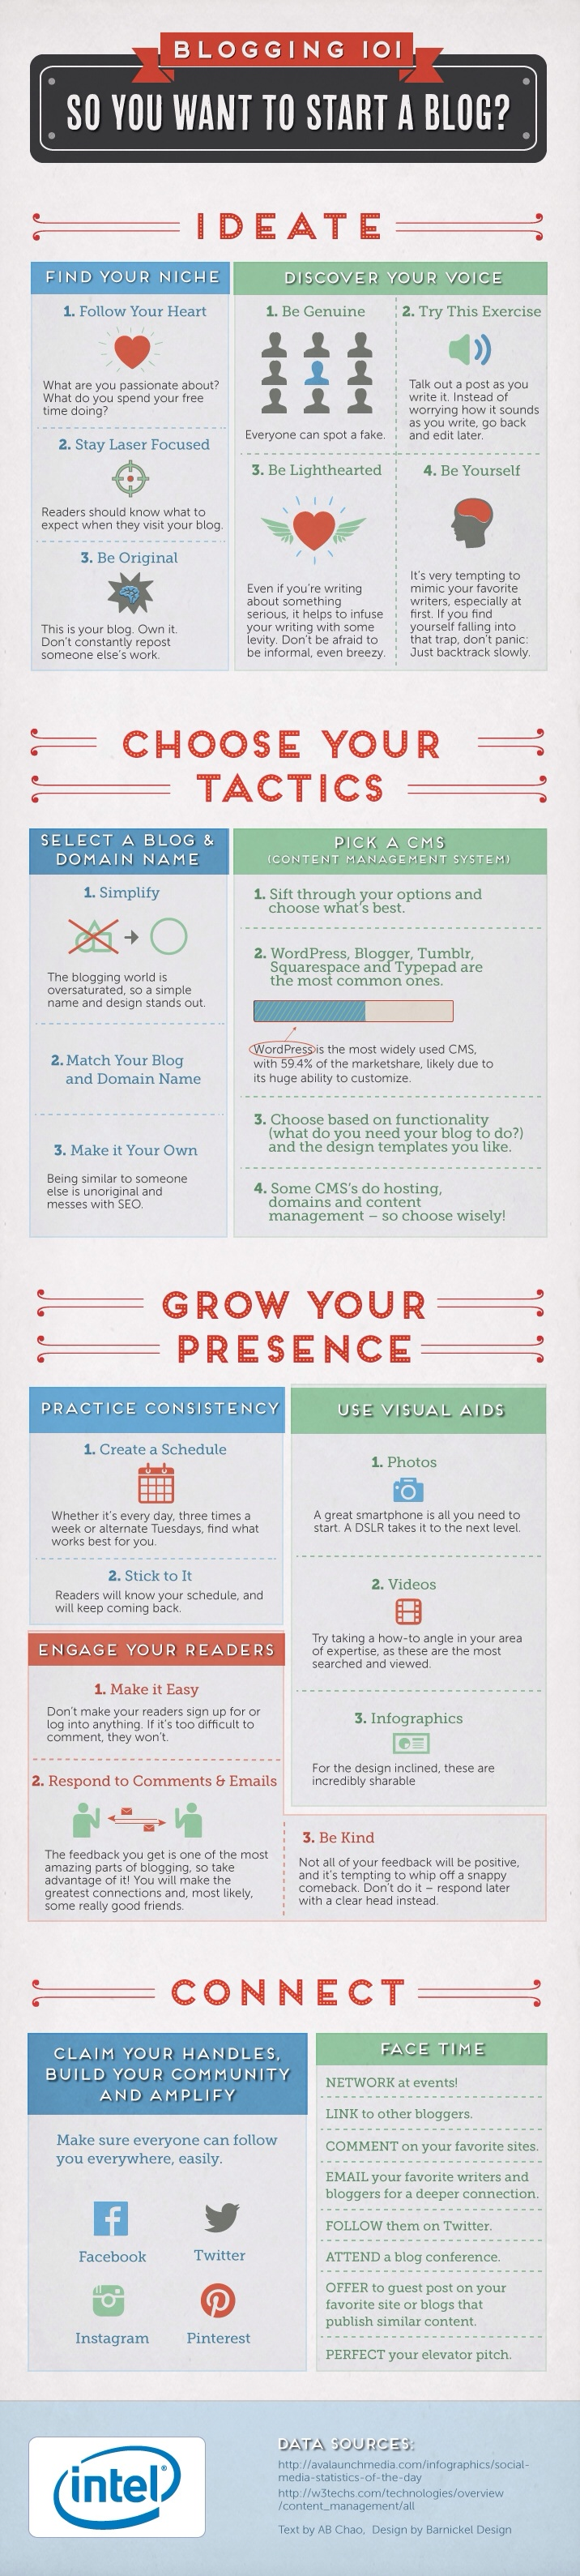 Blogging 101: So you want to start a blog? (Infografik)